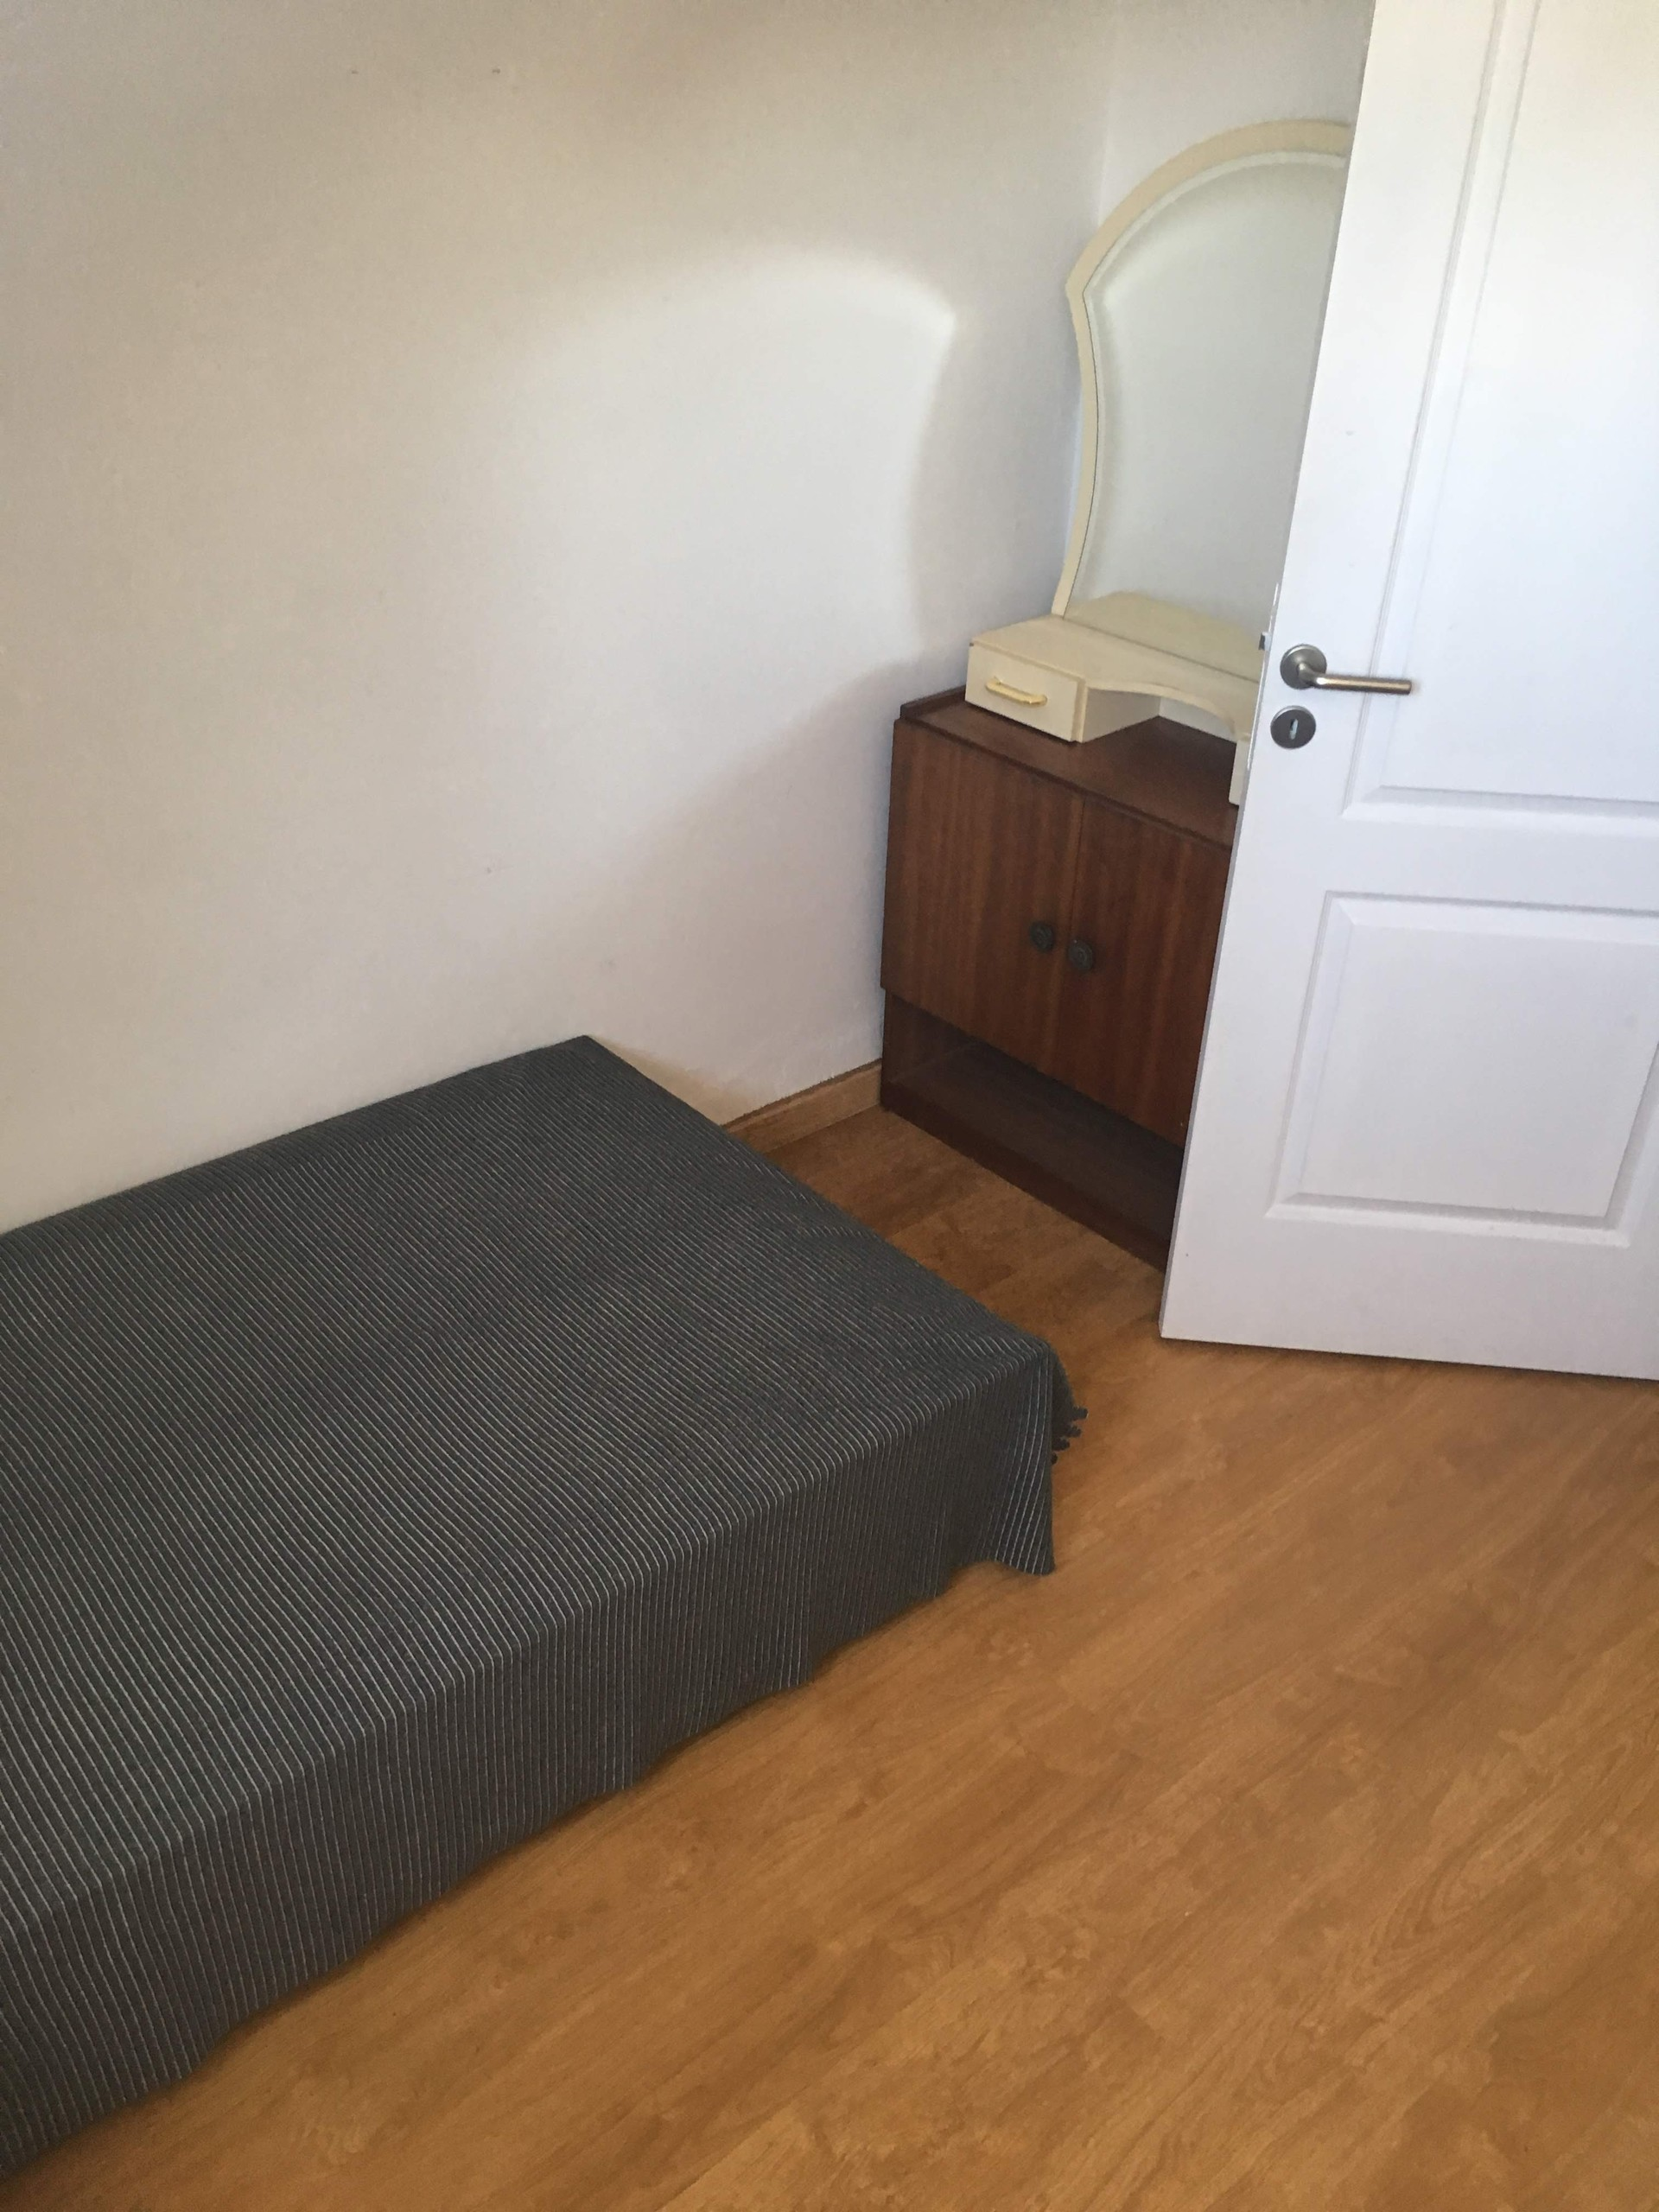 ROOMS FOR MALES IN QUELUZ, 13KM TO LISBON